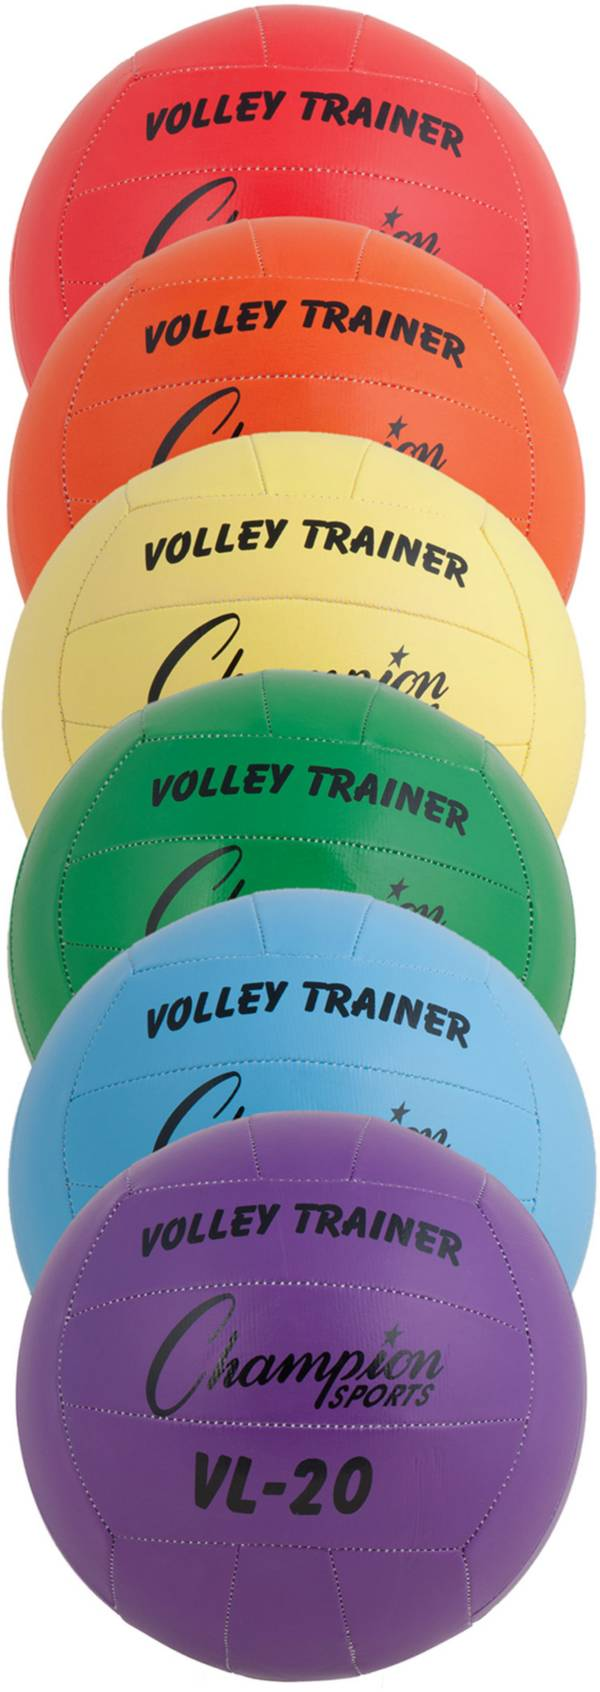 Champion Volleyball Trainer Set product image